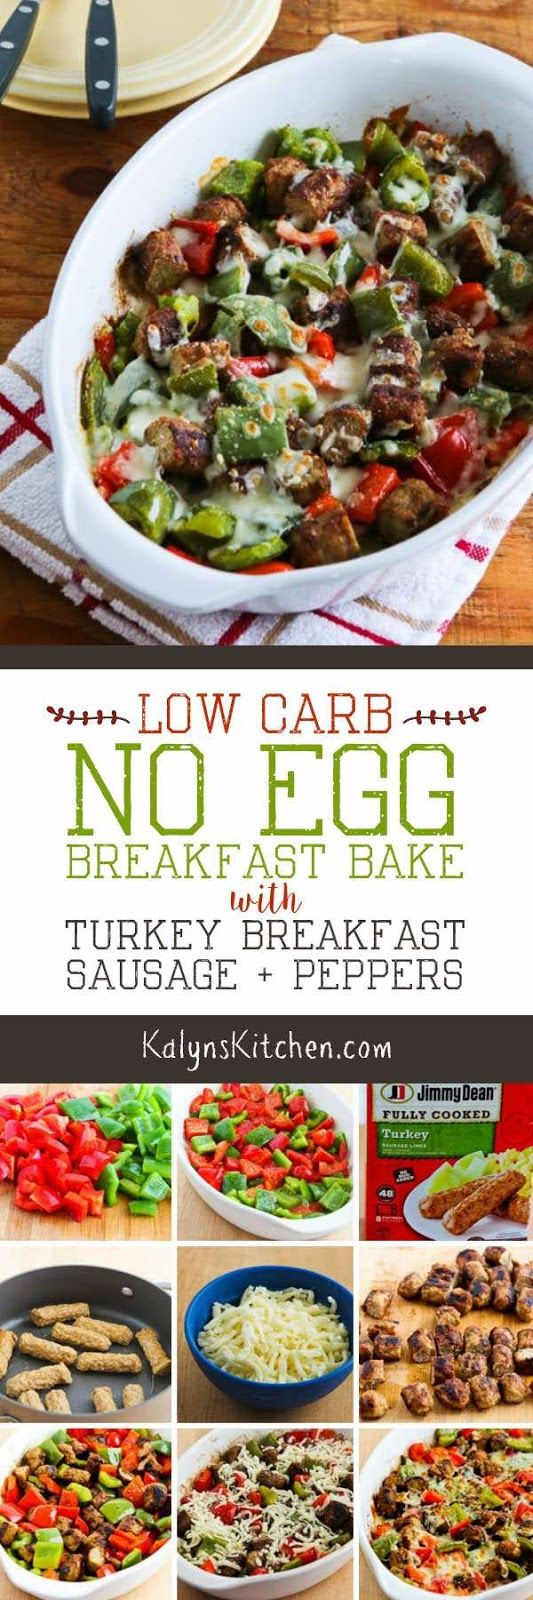 If you want a low-carb breakfast but don't want eggs, this Low-Carb No Egg Breakfast Bake with Turkey Breakfast Sausage and Peppers is really a treat! And this tasty egg-free low-carb breakfast option is also keto, low-glycemic, and South Beach Diet Phase One, and if you use gluten-free sausage this is gluten-free. [found on KalynsKitchen.com] #LowCarbBreakfast #LowCarbNoEggBreakfast #NoEggBreakfast #LowCarbBreakfastWithoutEggs